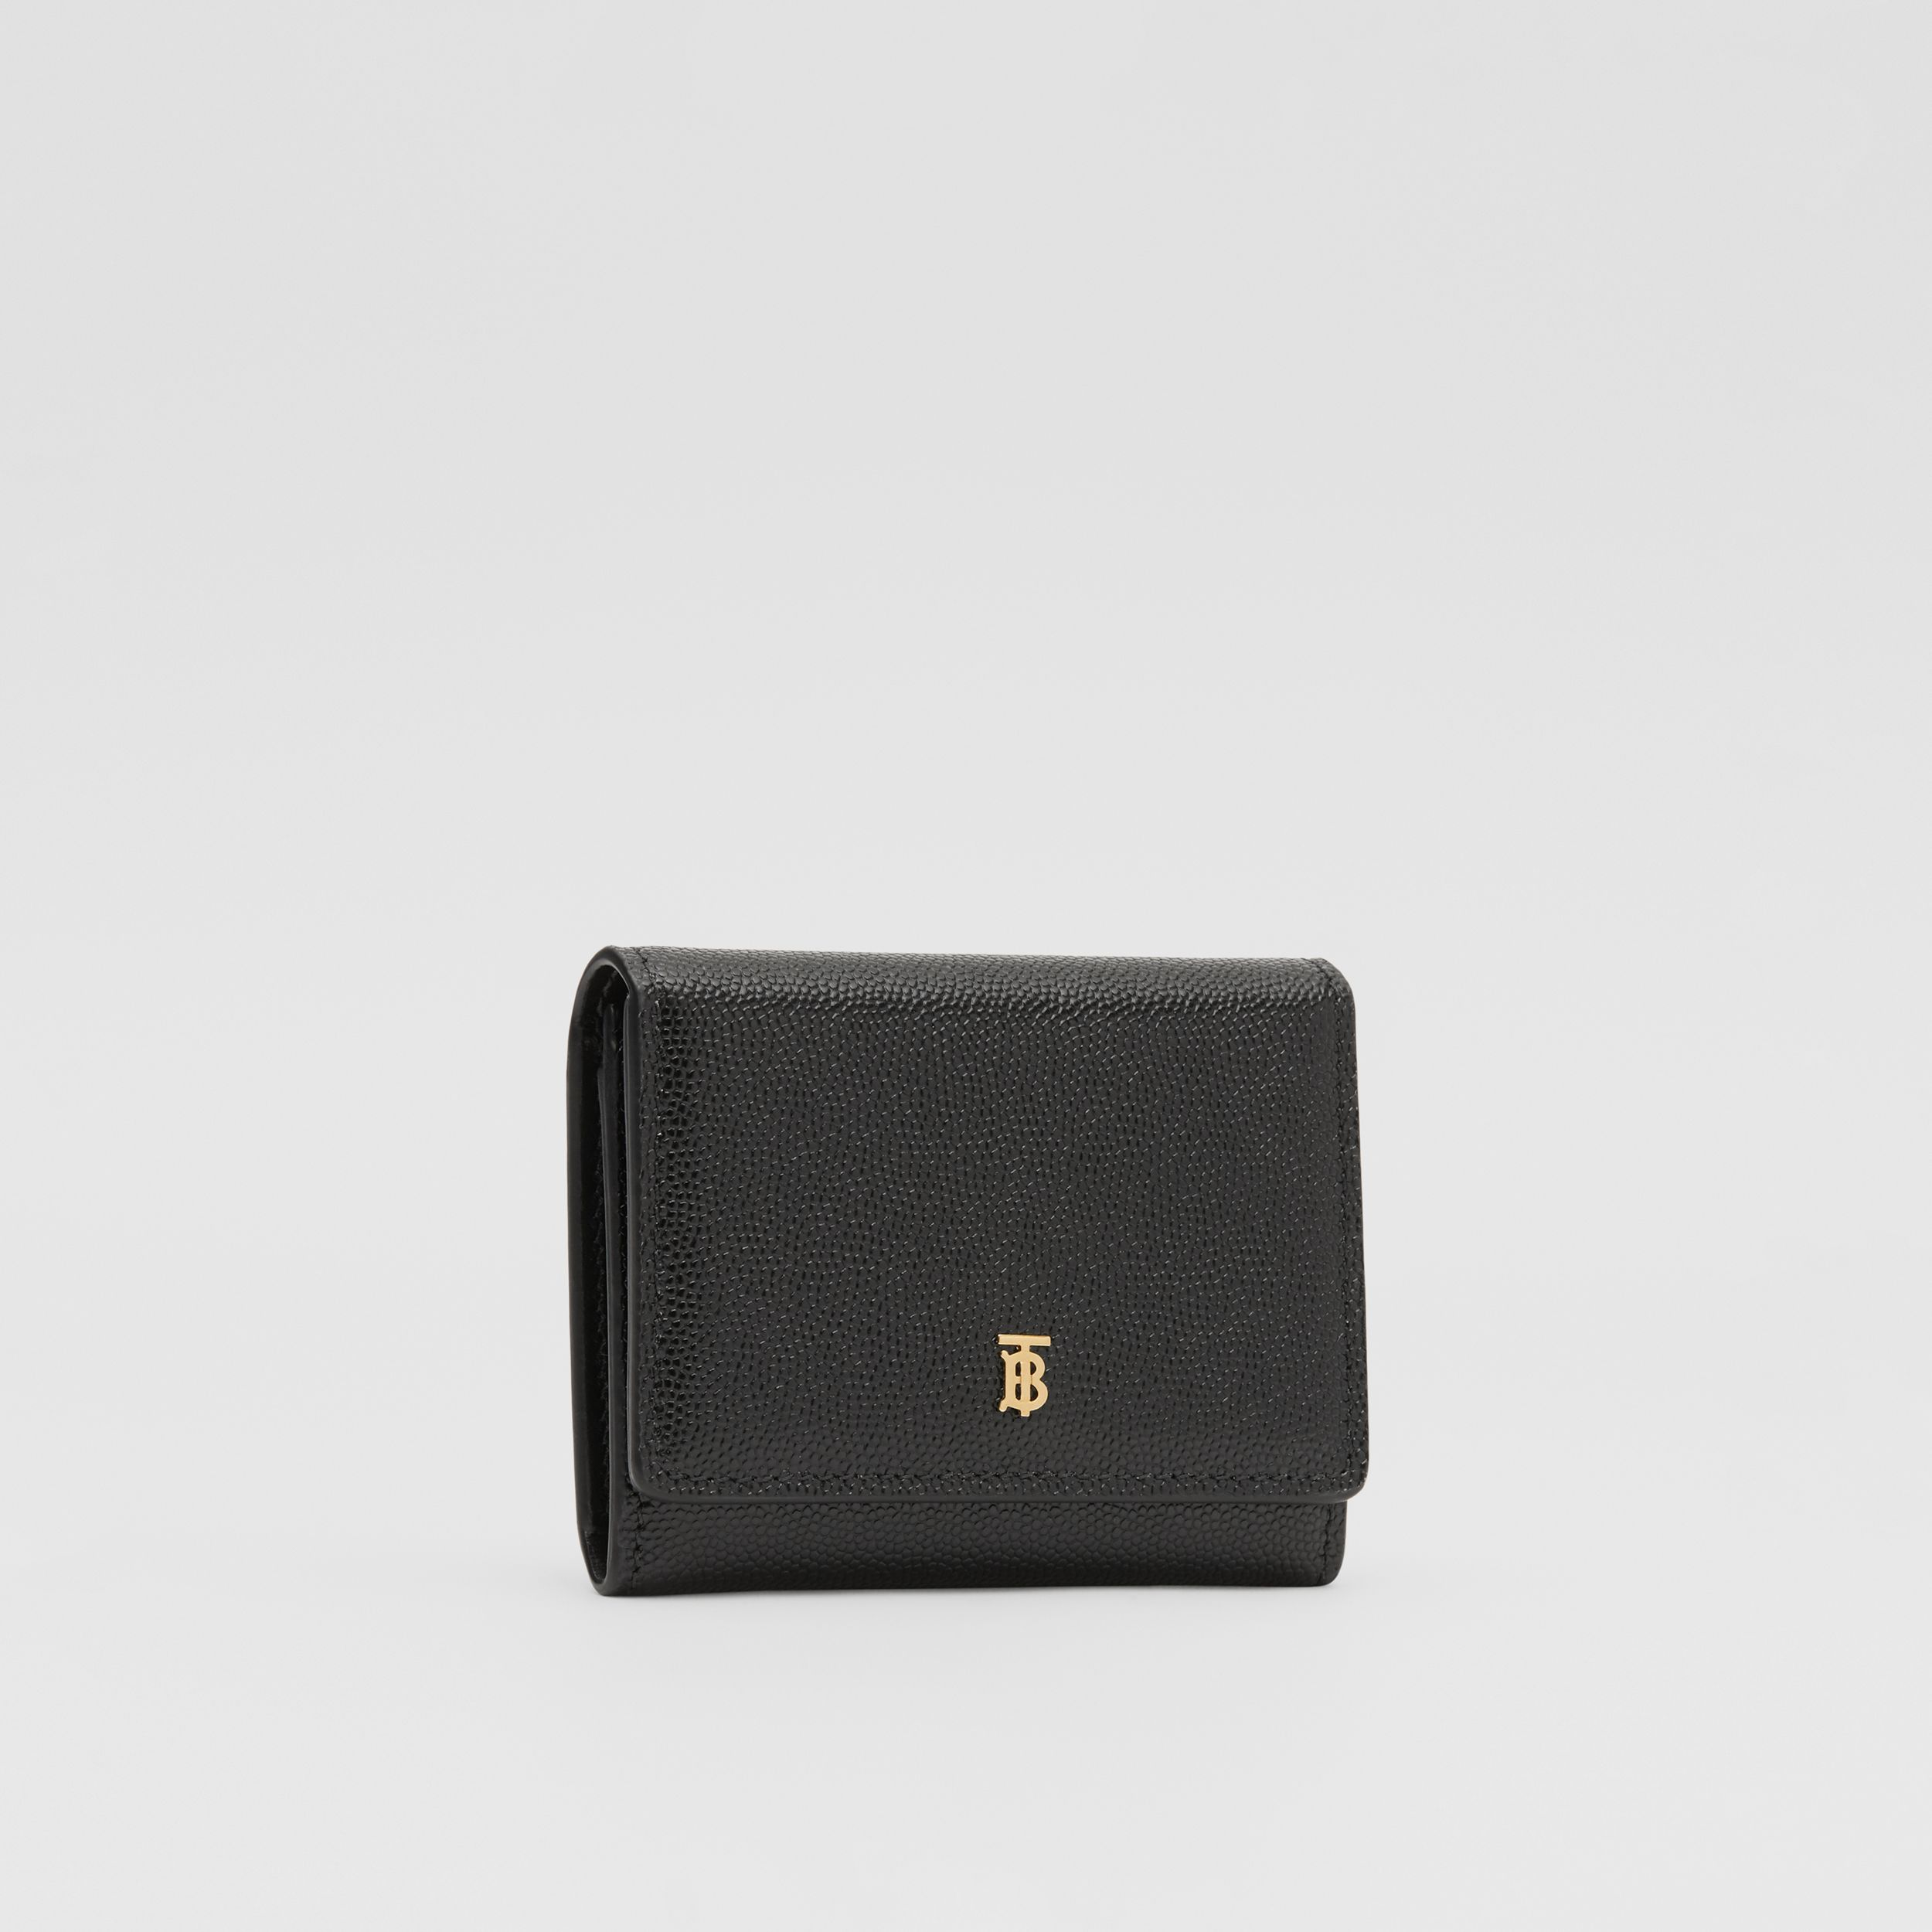 Grainy Leather ID Card Case in Black - Women | Burberry Singapore - 4